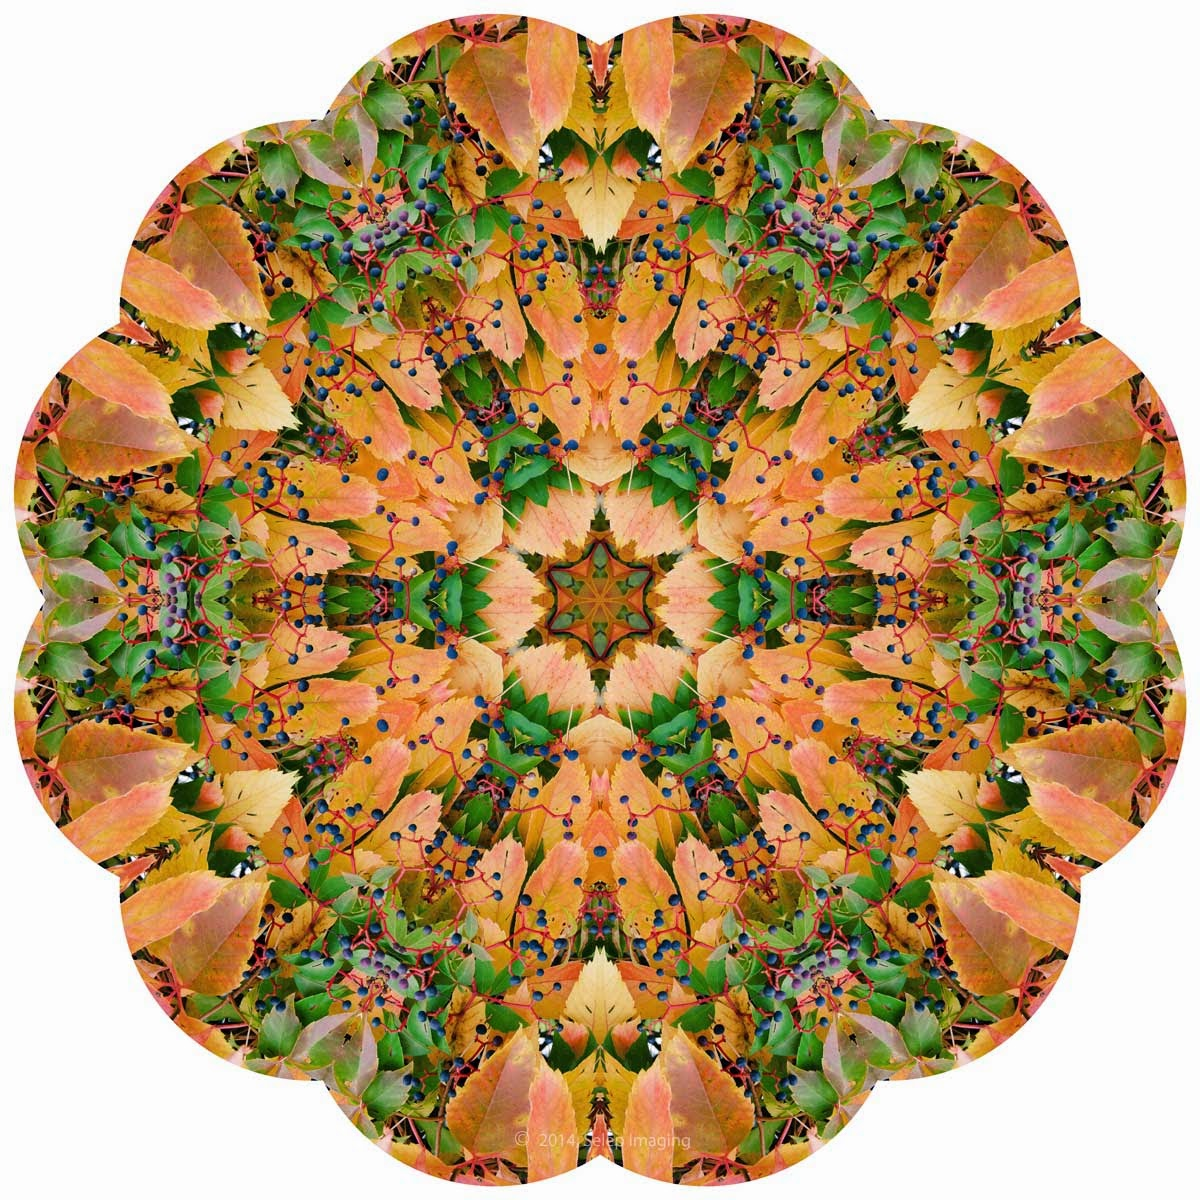 Kaleidoscope Photo Art fall foliage by Jeanne Selep